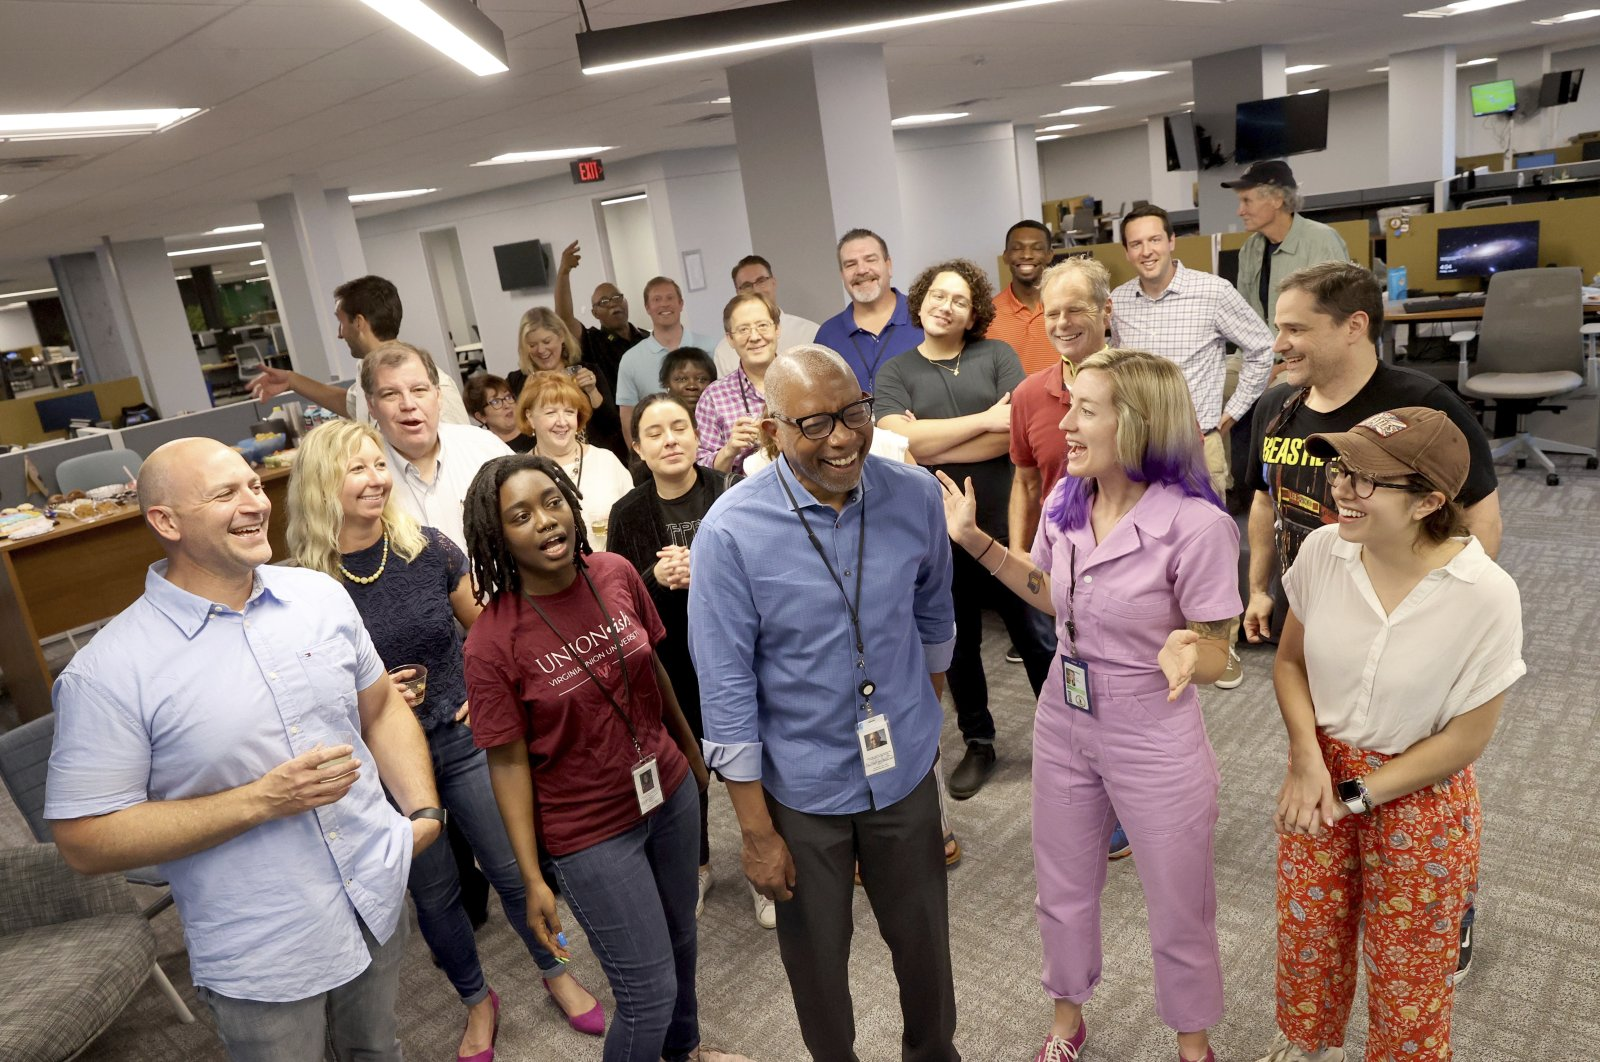 Michael Paul Williams (C), a columnist for the Richmond Times-Dispatch, celebrates with other newsroom staff at the newspaper Friday, June 11, 2021, in Richmond, Va. The Pulitzer Prize for commentary went to Williams for his series of columns on dismantling Confederate monuments in Richmond following Floyd's death. (AP Photo)